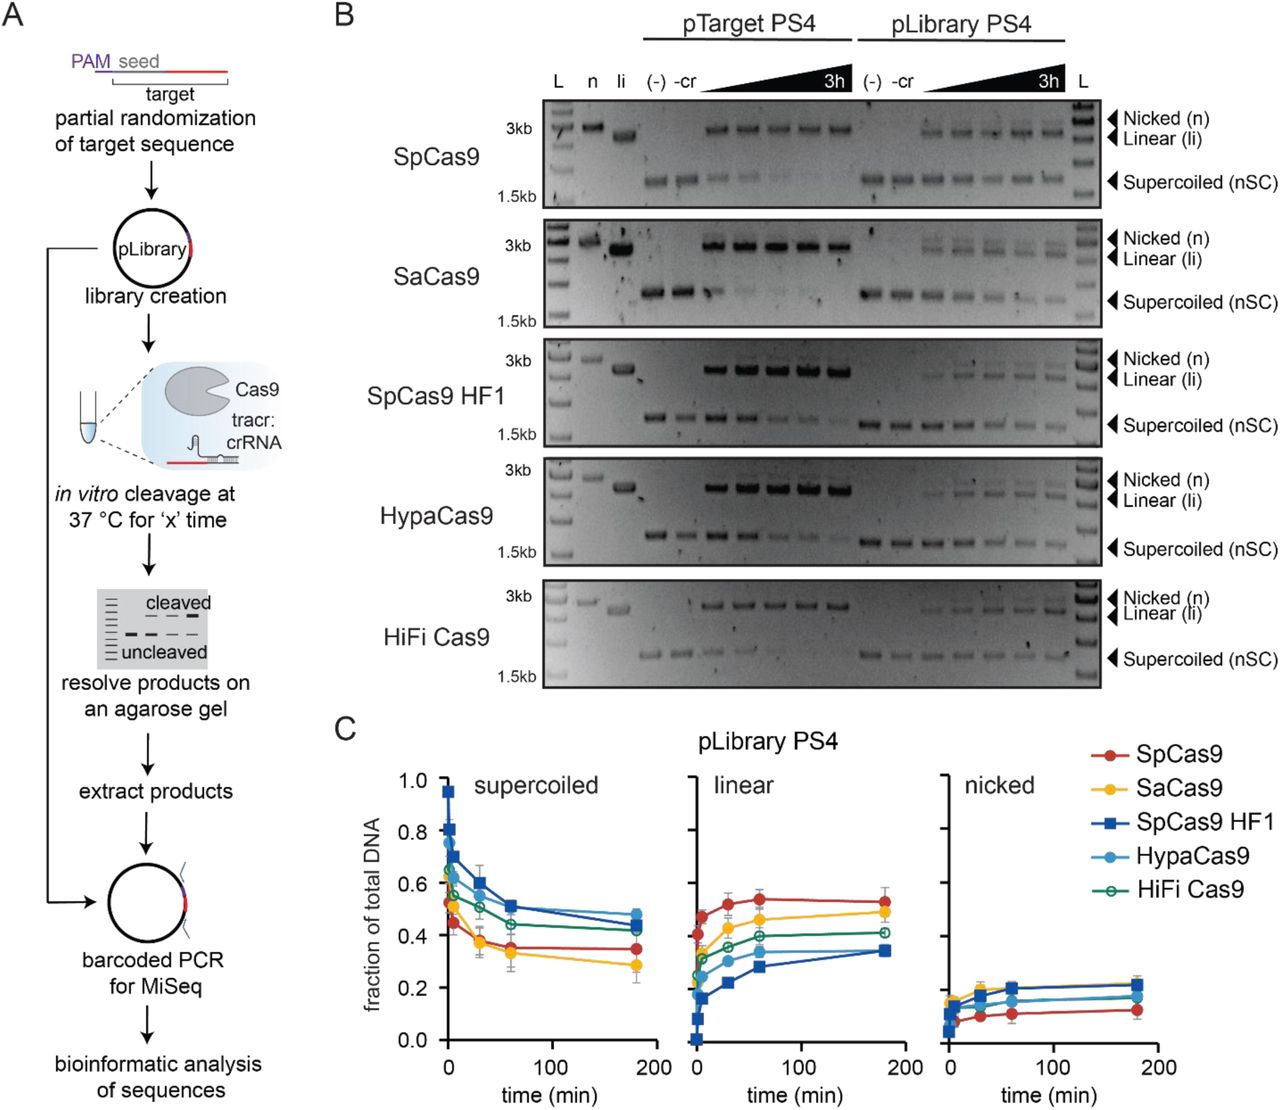 High-throughput in vitro analysis of Cas9 mismatch tolerance. (A) Outline and workflow of the high-throughput in vitro cleavage assay. (B) Representative agarose gel showing time course cleavage of negatively supercoiled (nSC) plasmid containing a fully matched PS4 target (pTarget PS4, left) and plasmid library PS4 (pLibrary PS4, right) by Cas9 variants, resulting in linear (li) and/or nicked (n) products. Time points at which the samples were collected are 1 min, 5 min, 30 min, 1 h, and 3 h. All controls were performed under the same conditions as the longest time point for the experimental samples. Controls: (−) = pTarget or pLibrary alone incubated at 37 °C for the longest time point in the assay (3 h); (-r) = pTarget or pLibrary incubated with Cas9 only at 37 °C for the longest time point in the assay (3 h); n = Nt.BspQI nicked pUC19; li = BsaI-HF linearized pUC19 (C) Overall cleavage of the pLibrary PS4 by Cas9 indicating the decrease in supercoiled (nSC) pool and appearance of nicked (n) and linear (li) pools over time. The 0 time point is the quantification of the negative control pLibrary (i.e. pLibrary run on a gel after preparation as represented in Fig. S2A). Values plotted represent an average of two replicates. Error bars are SEM.